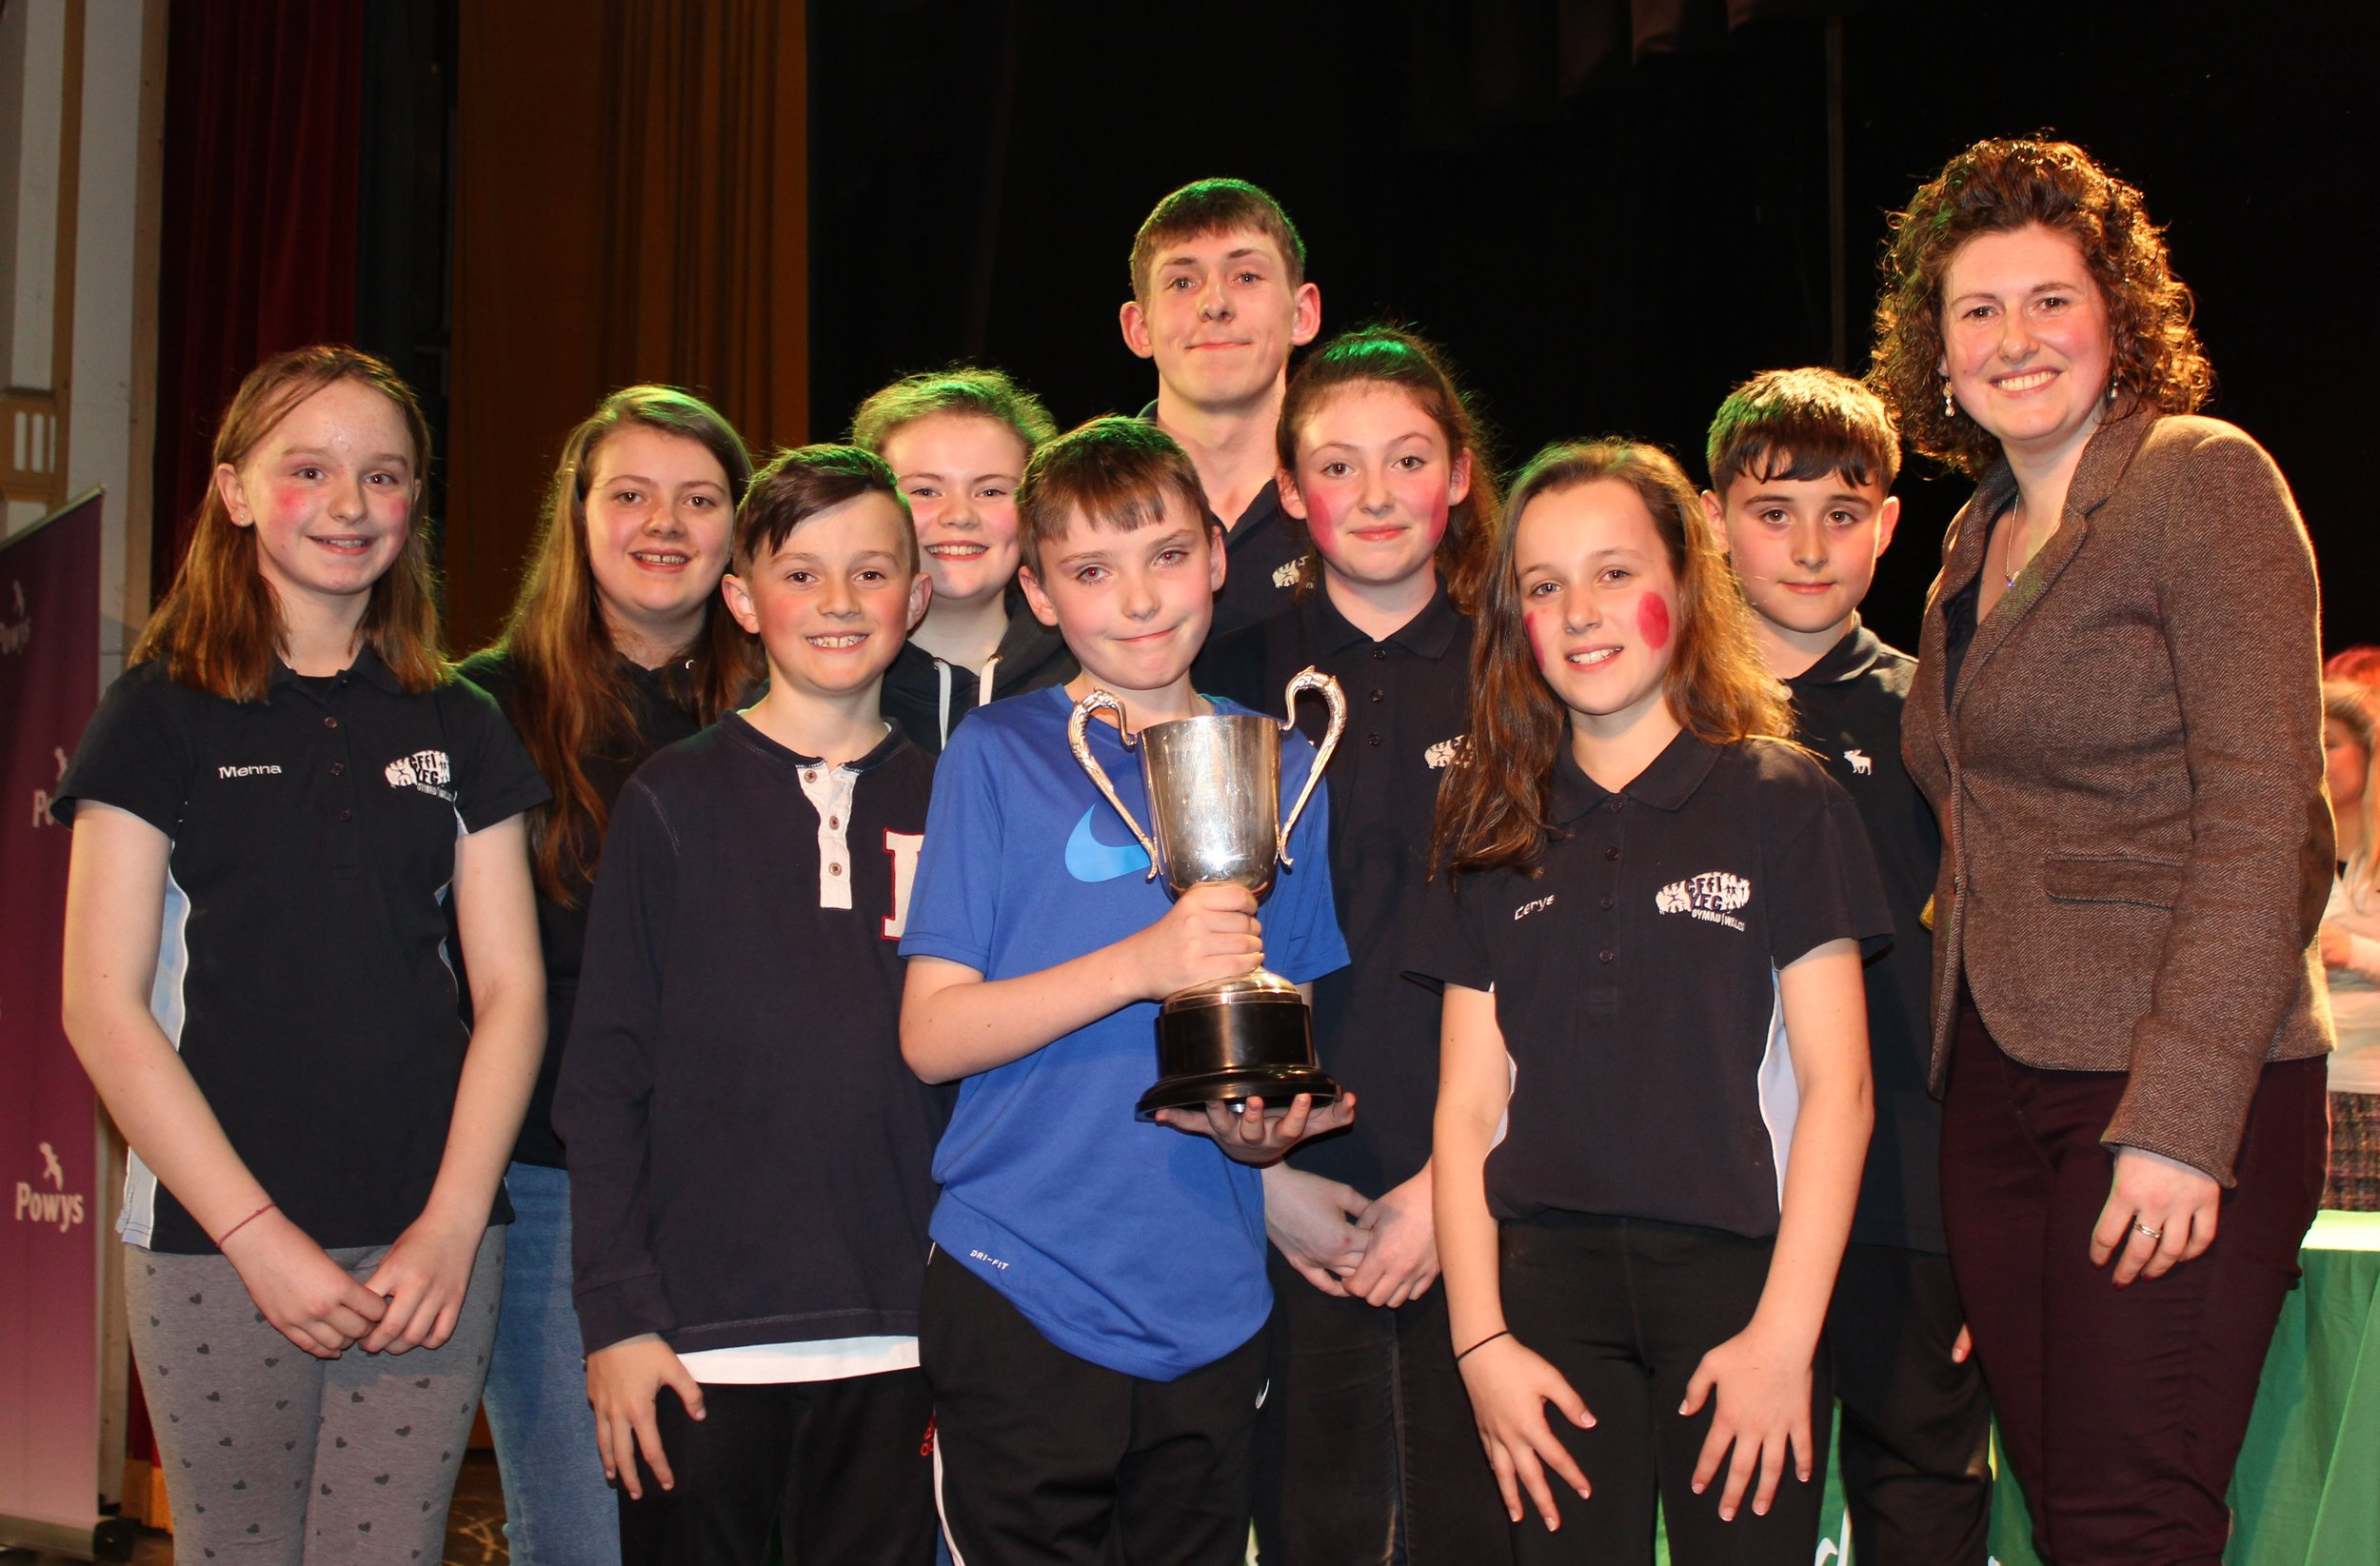 Rhayader YFC - Estyn Meredith MBE Perpetual Trophy for Best Sketch/Group within a Performance.